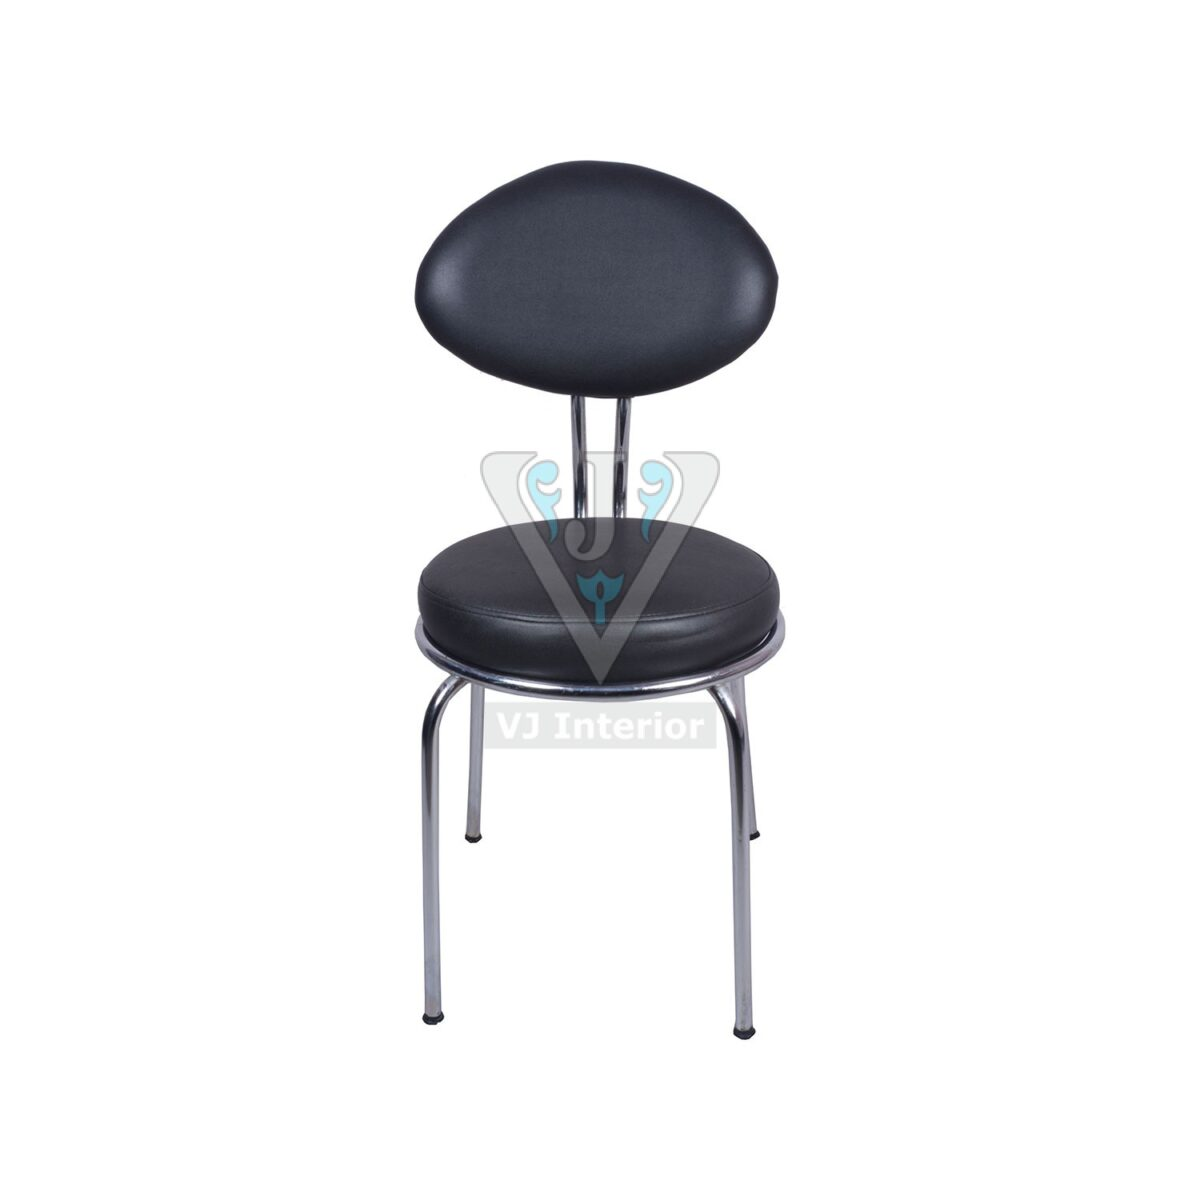 THE SPACIO BLACK VISITOR CHAIR WITH FIX FRAME